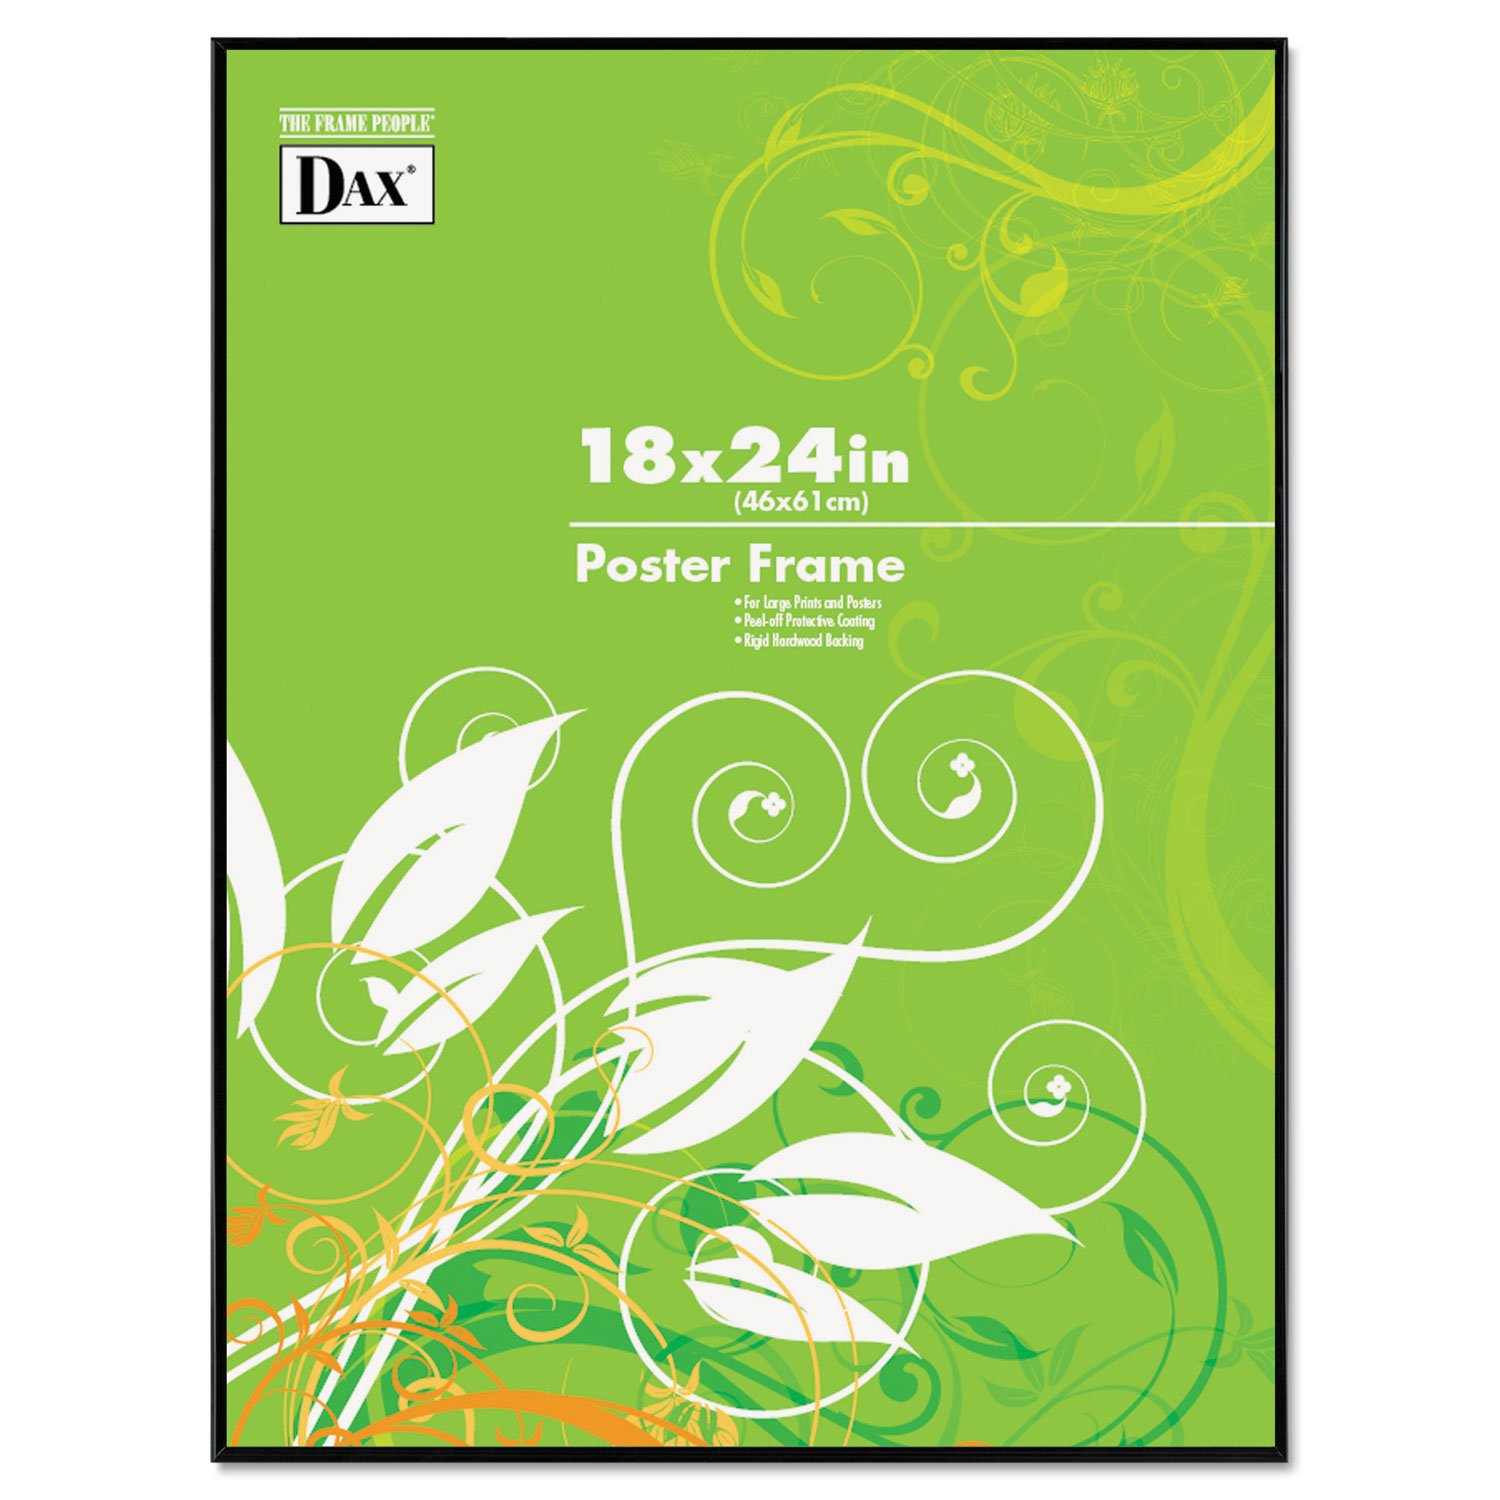 DAX N16018BT Coloredge Poster Frame, Clear Plastic Window, 18 x 24, Black